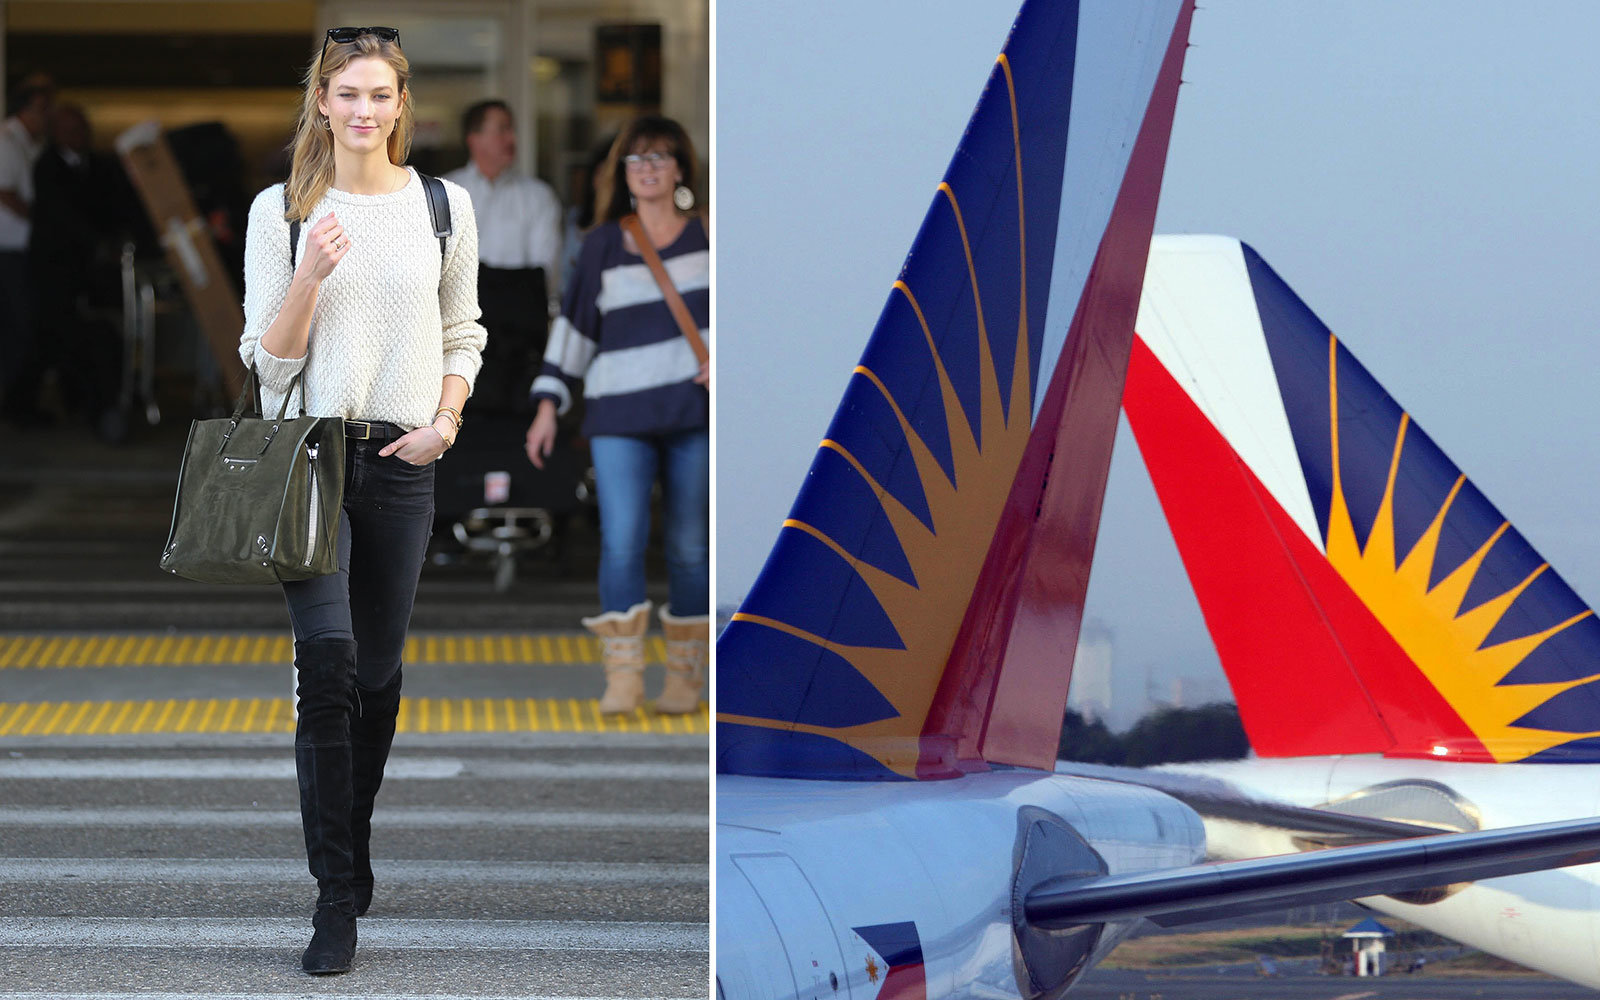 Karlie Kloss slams Philippine Airlines